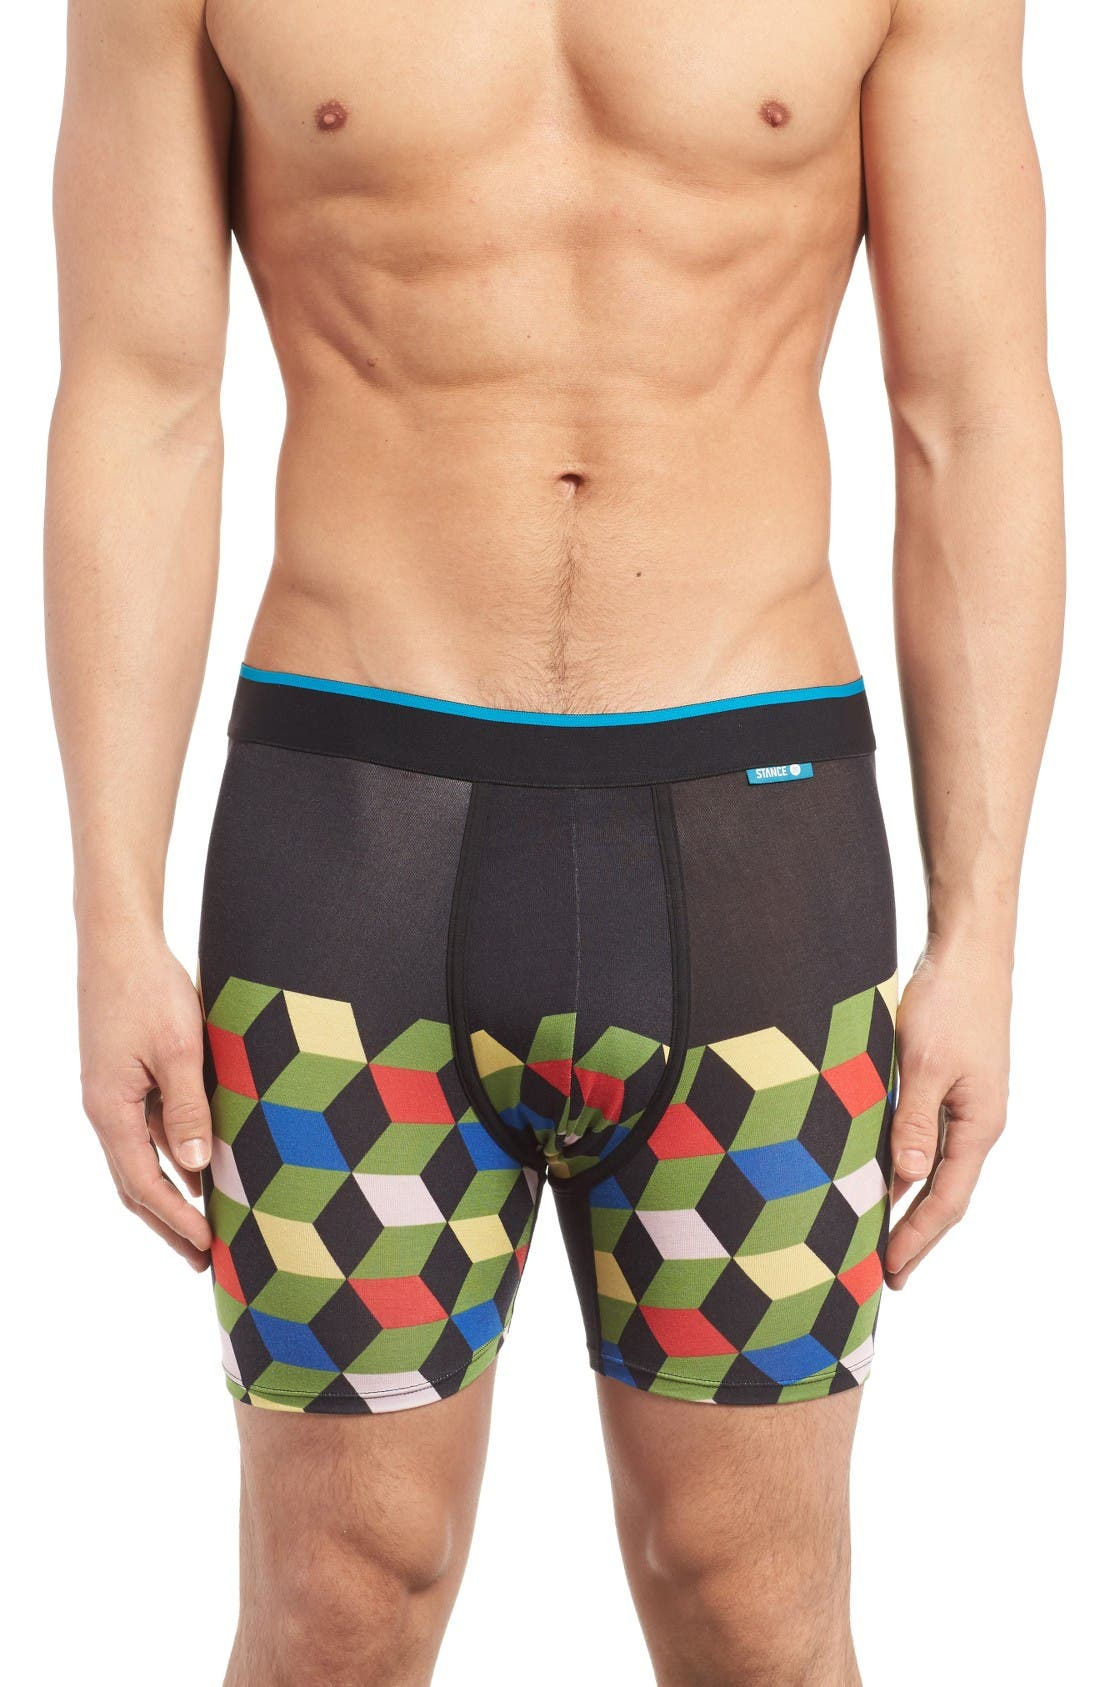 Alternate Image 1 Selected - Stance The Wholester - J. Harden Boxer Briefs